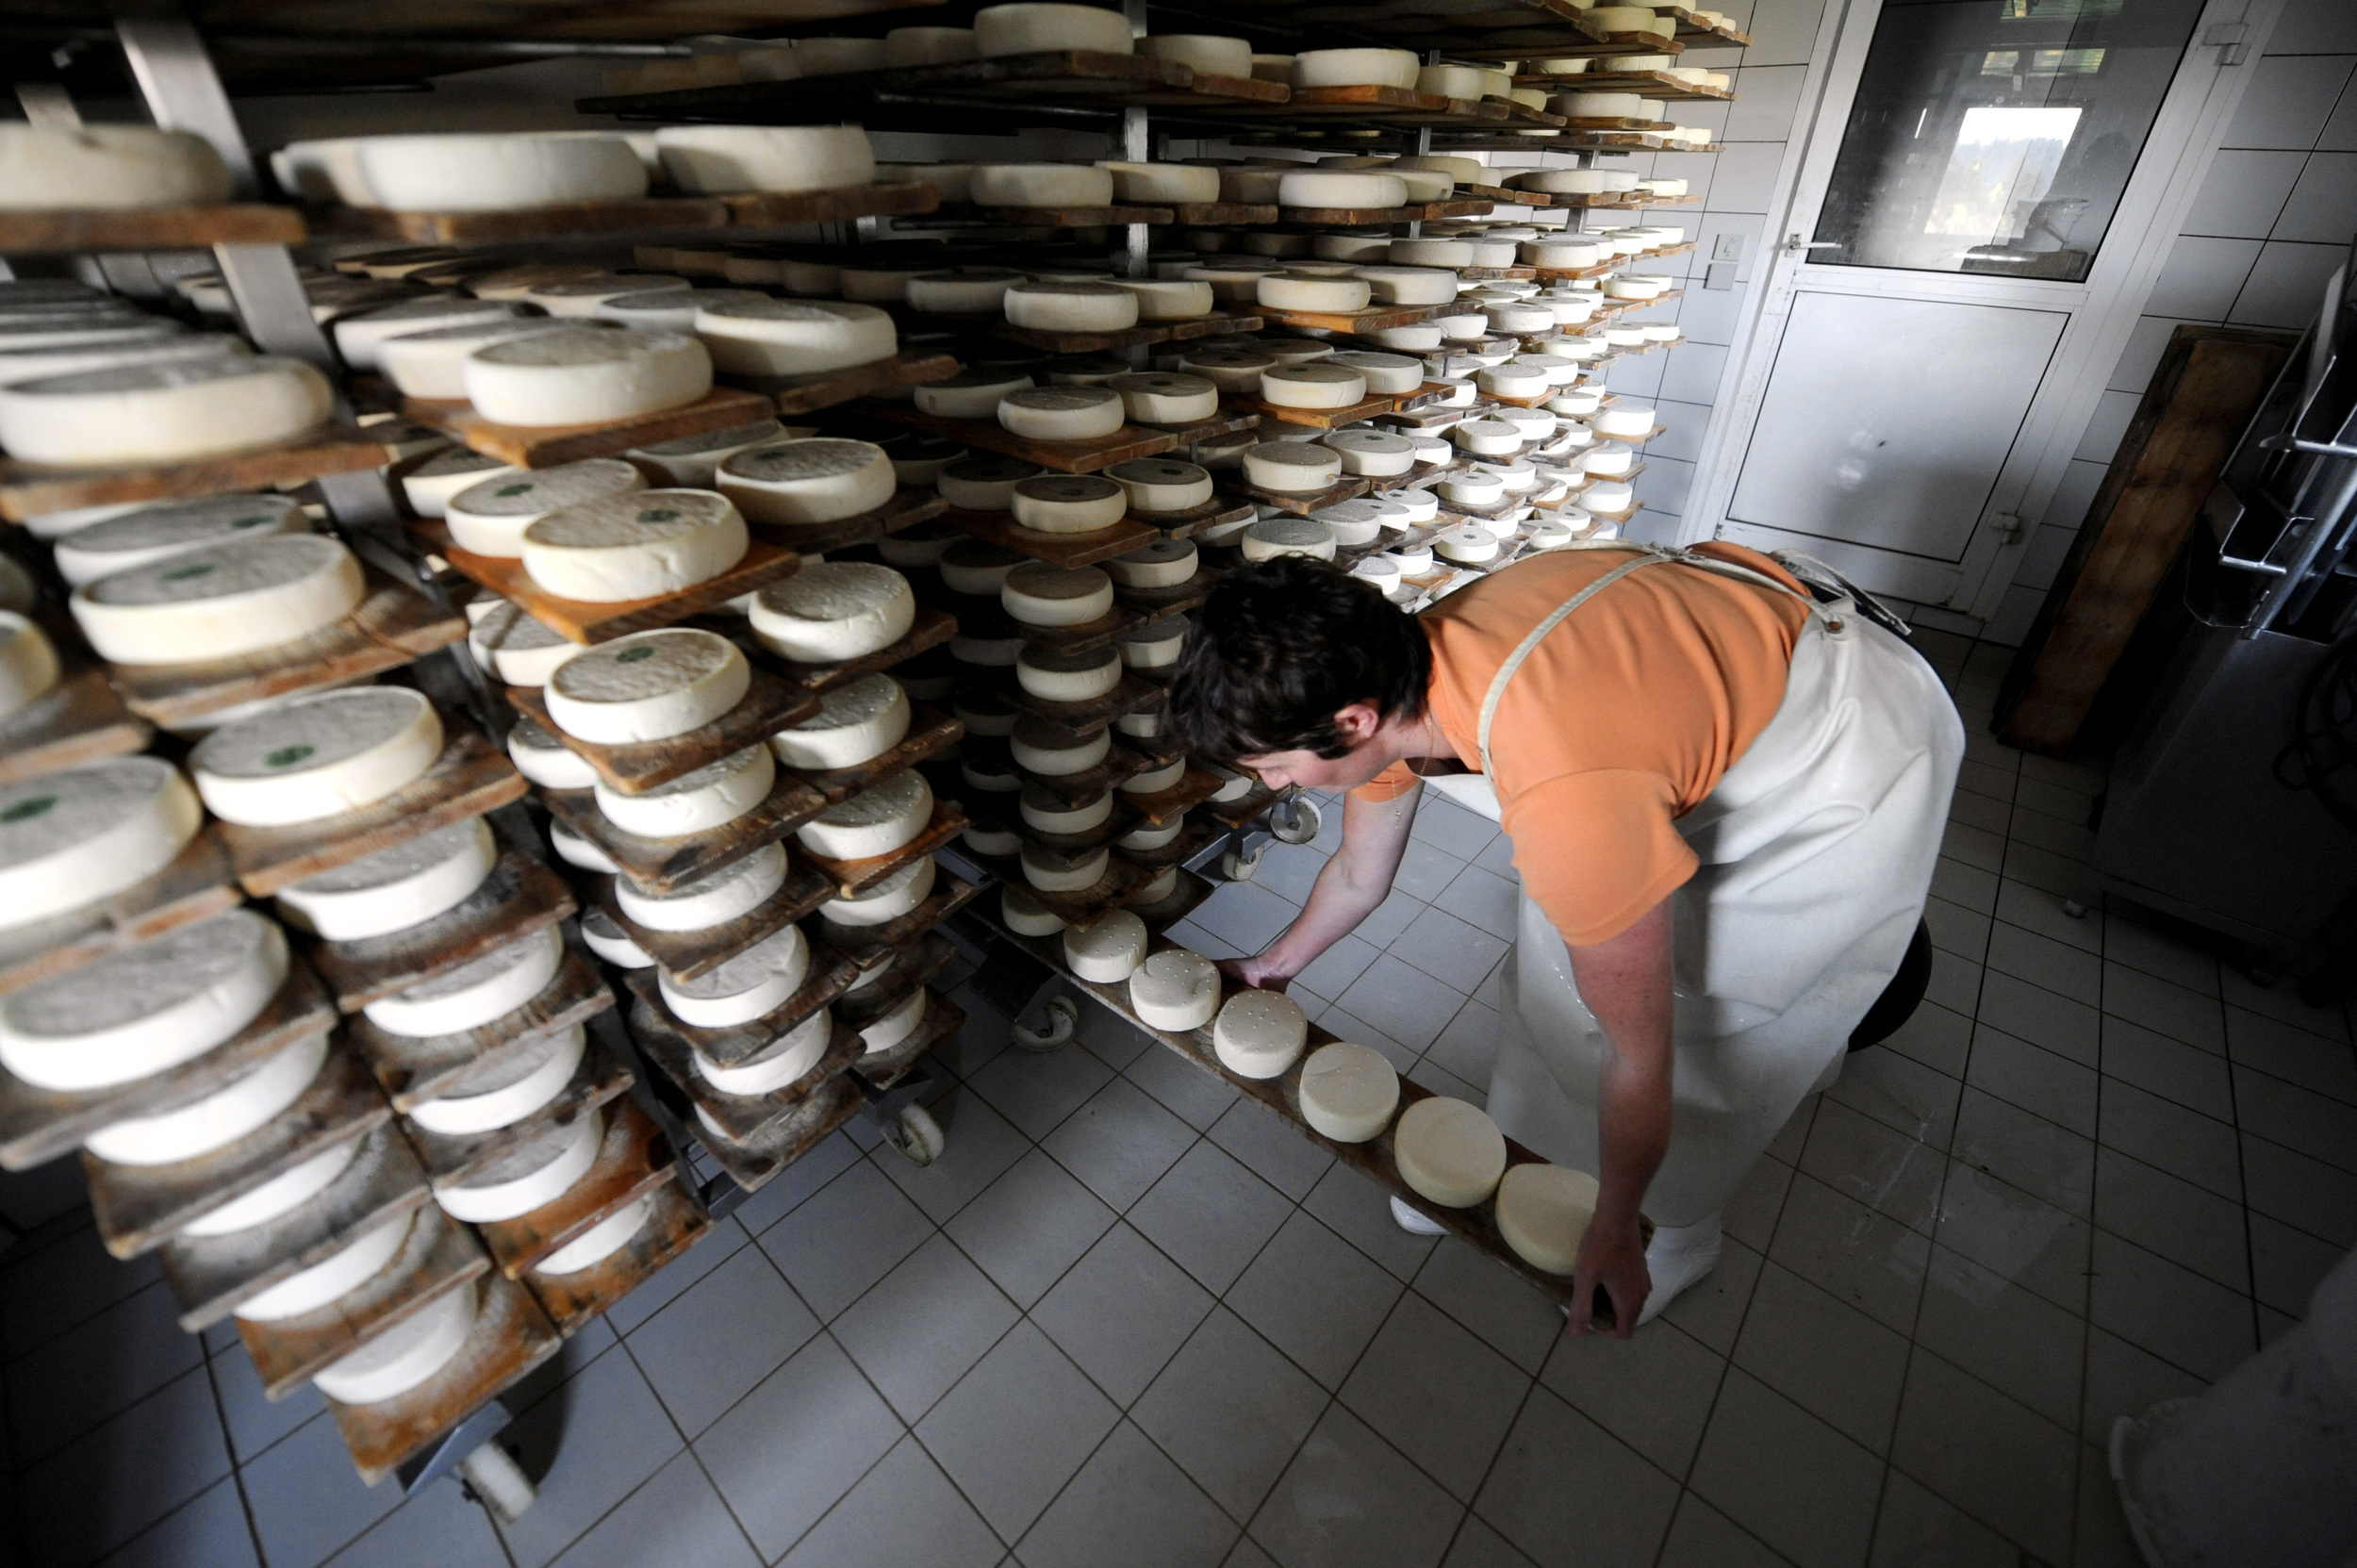 Marvelous photograph of FDA ruling could alter cheese aging process AOL.com with #955736 color and 2500x1663 pixels